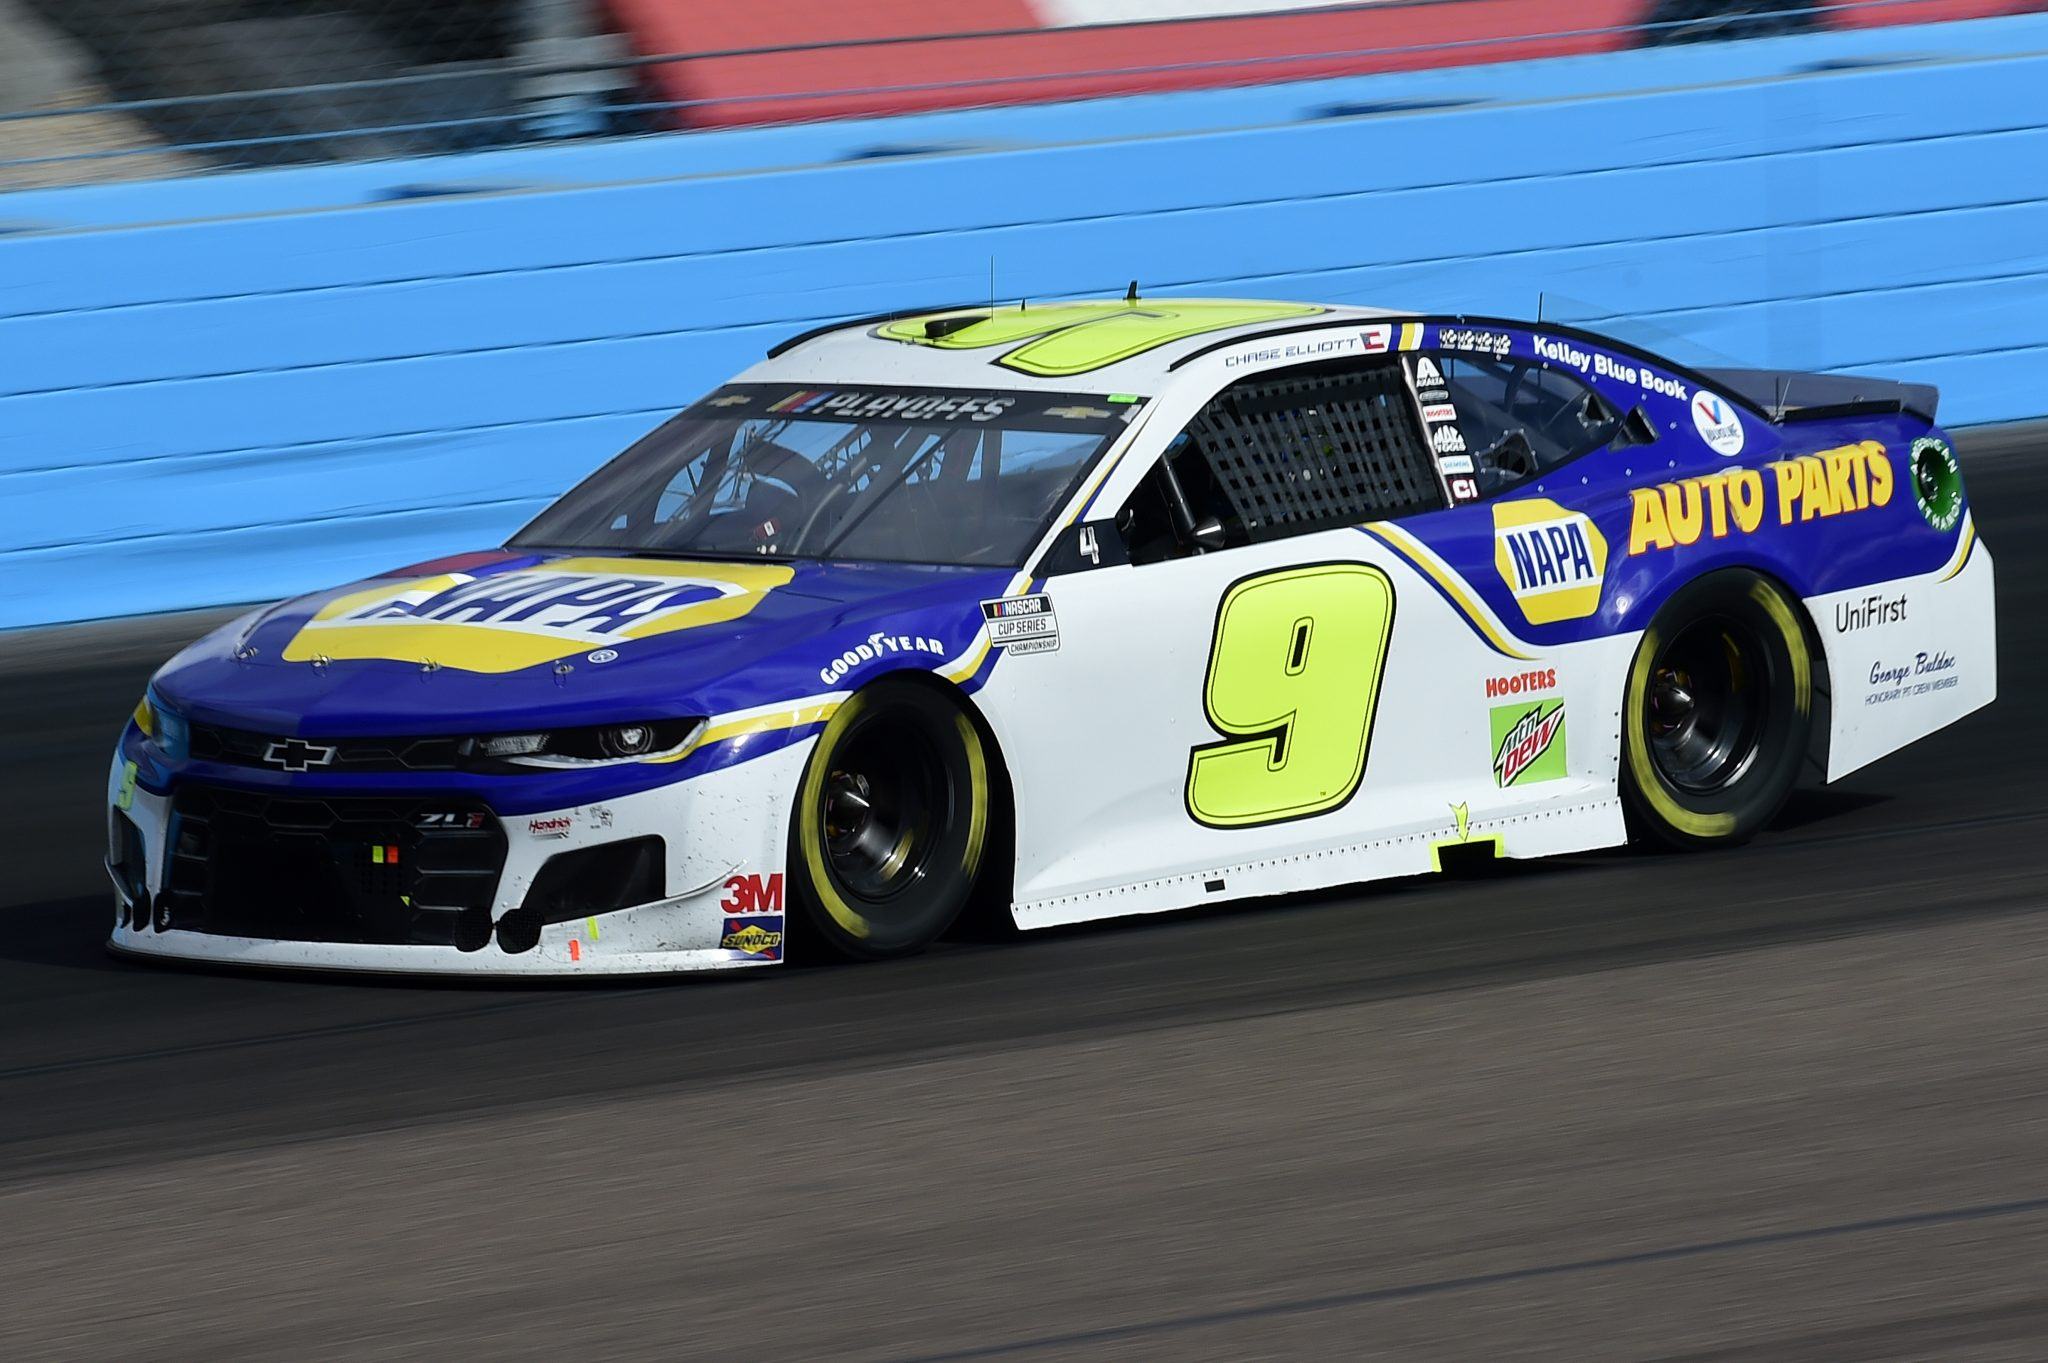 AVONDALE, ARIZONA - NOVEMBER 08: Chase Elliott, driver of the #9 NAPA Auto Parts Chevrolet, drives during the NASCAR Cup Series Season Finale 500 at Phoenix Raceway on November 08, 2020 in Avondale, Arizona. (Photo by Jared C. Tilton/Getty Images) | Getty Images